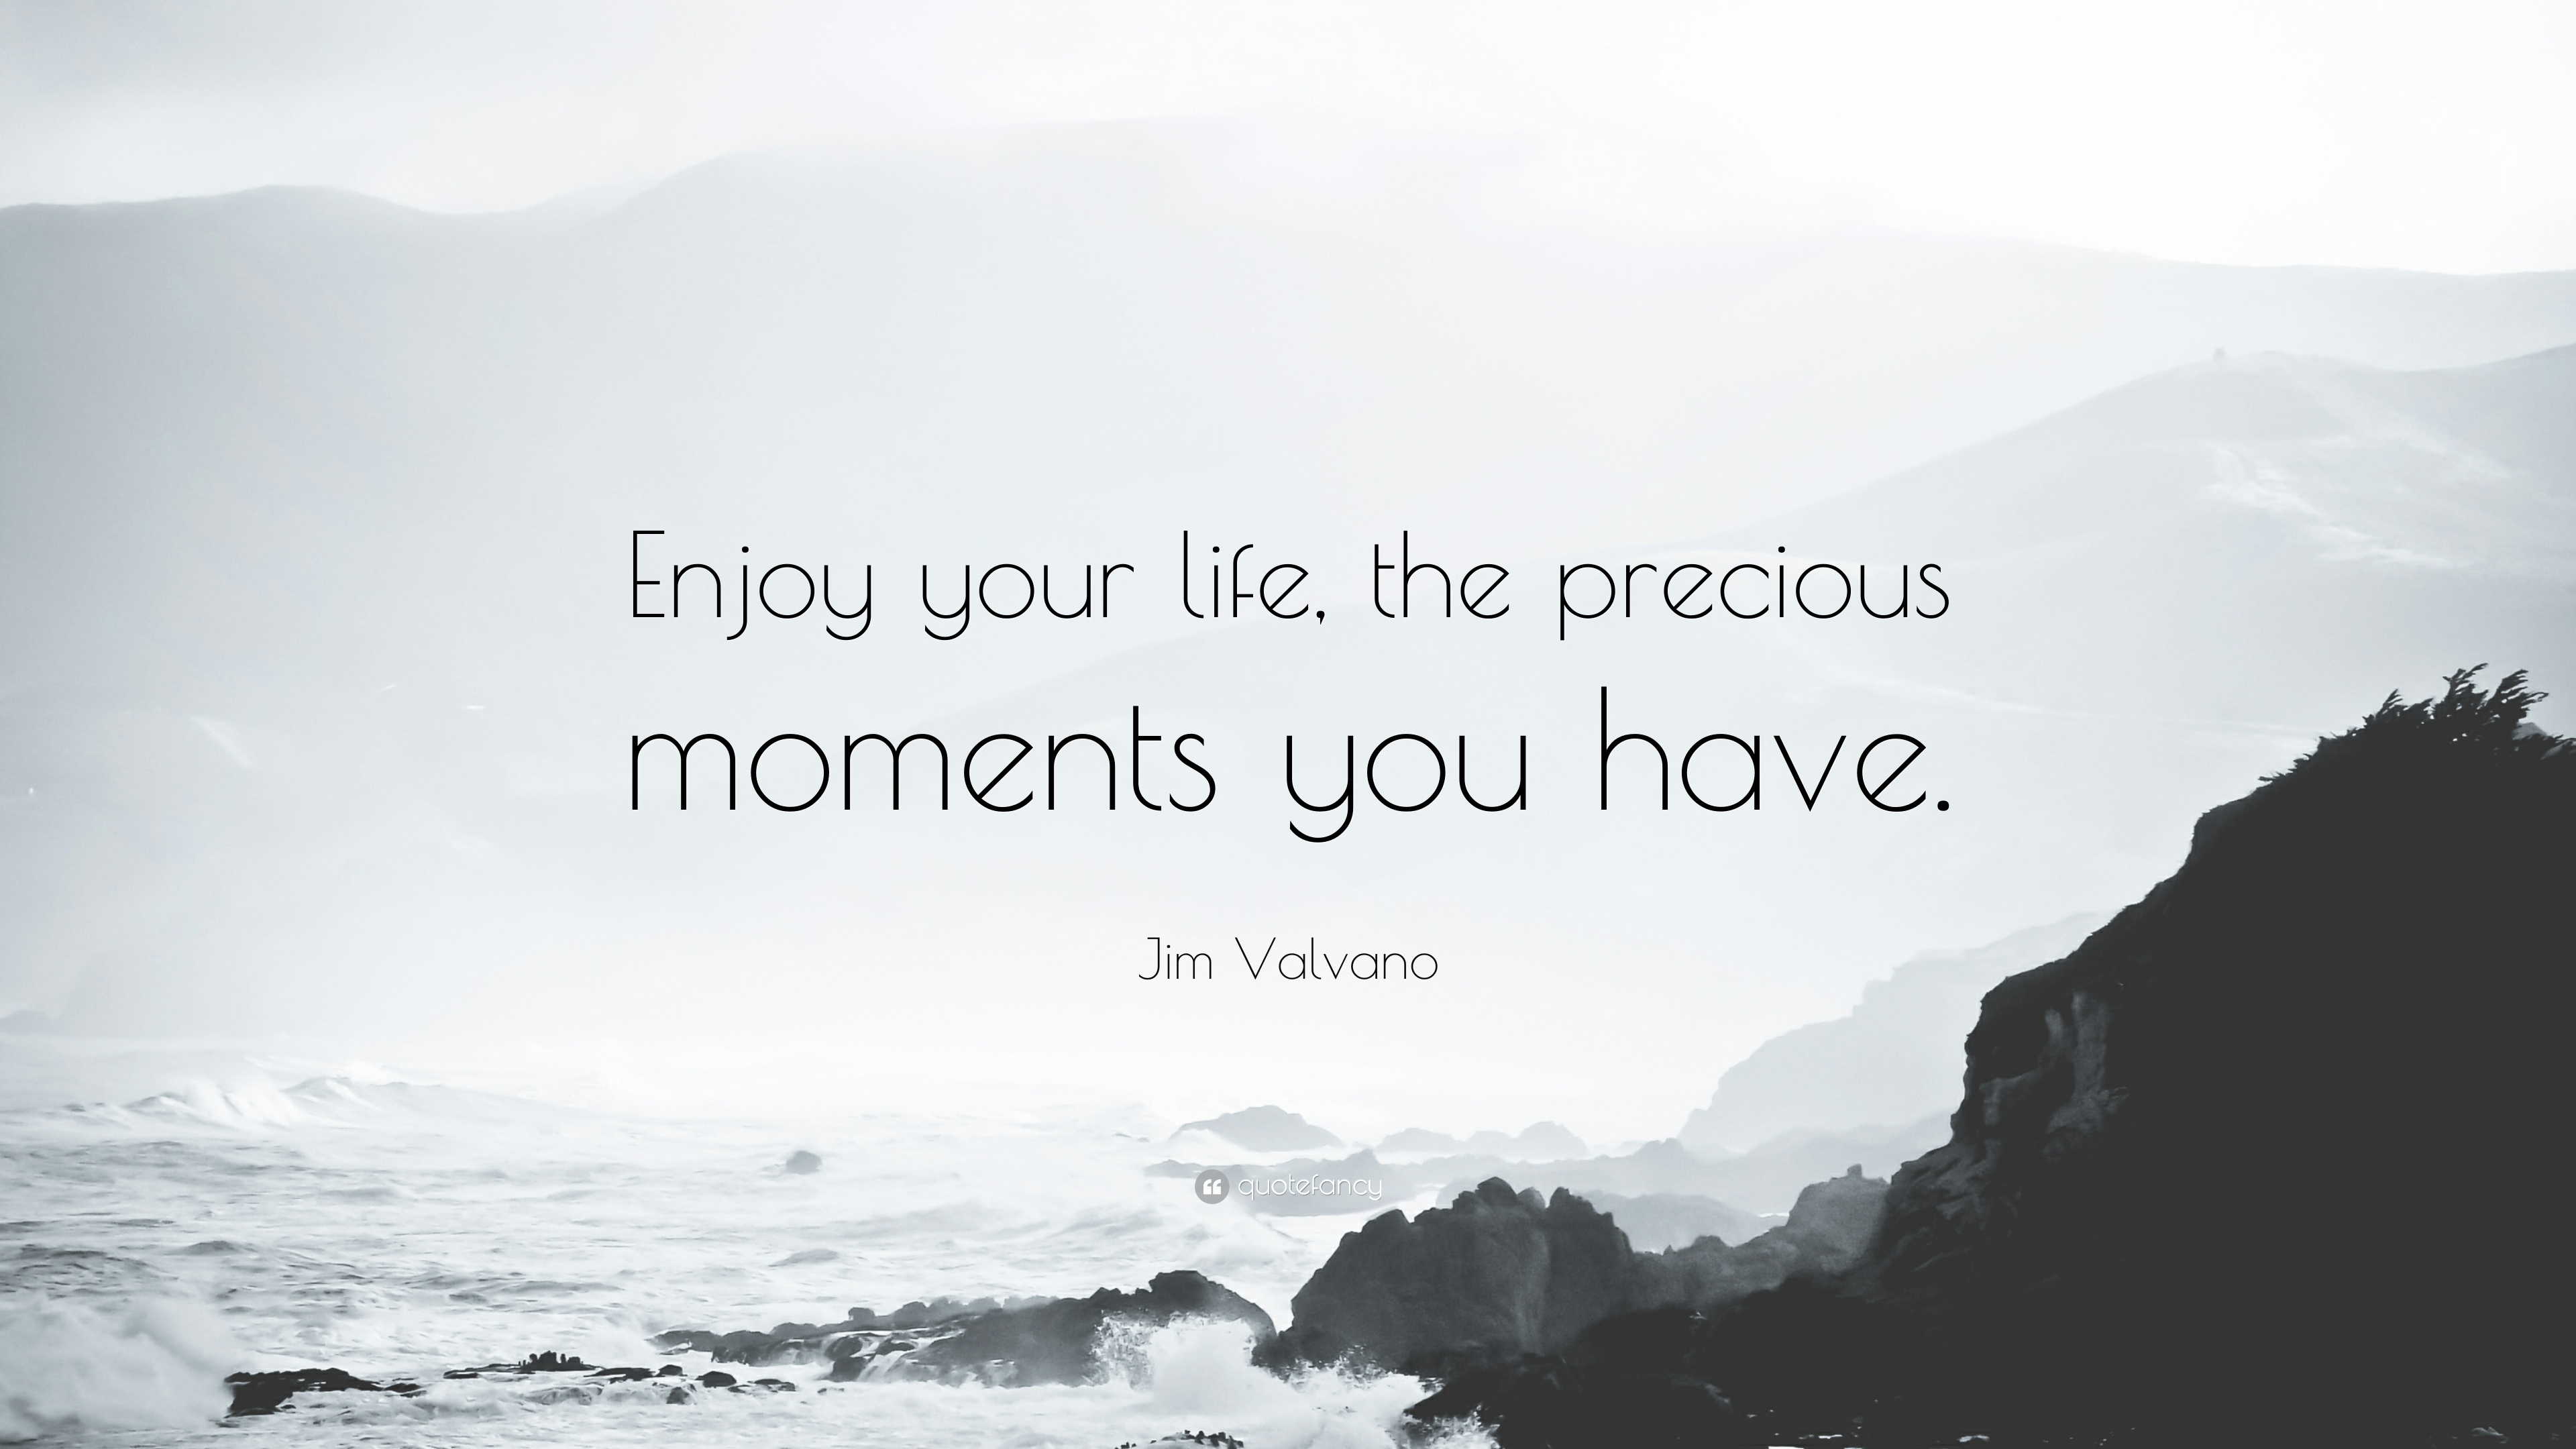 Jim Valvano Quote Enjoy Your Life The Precious Moments You Have